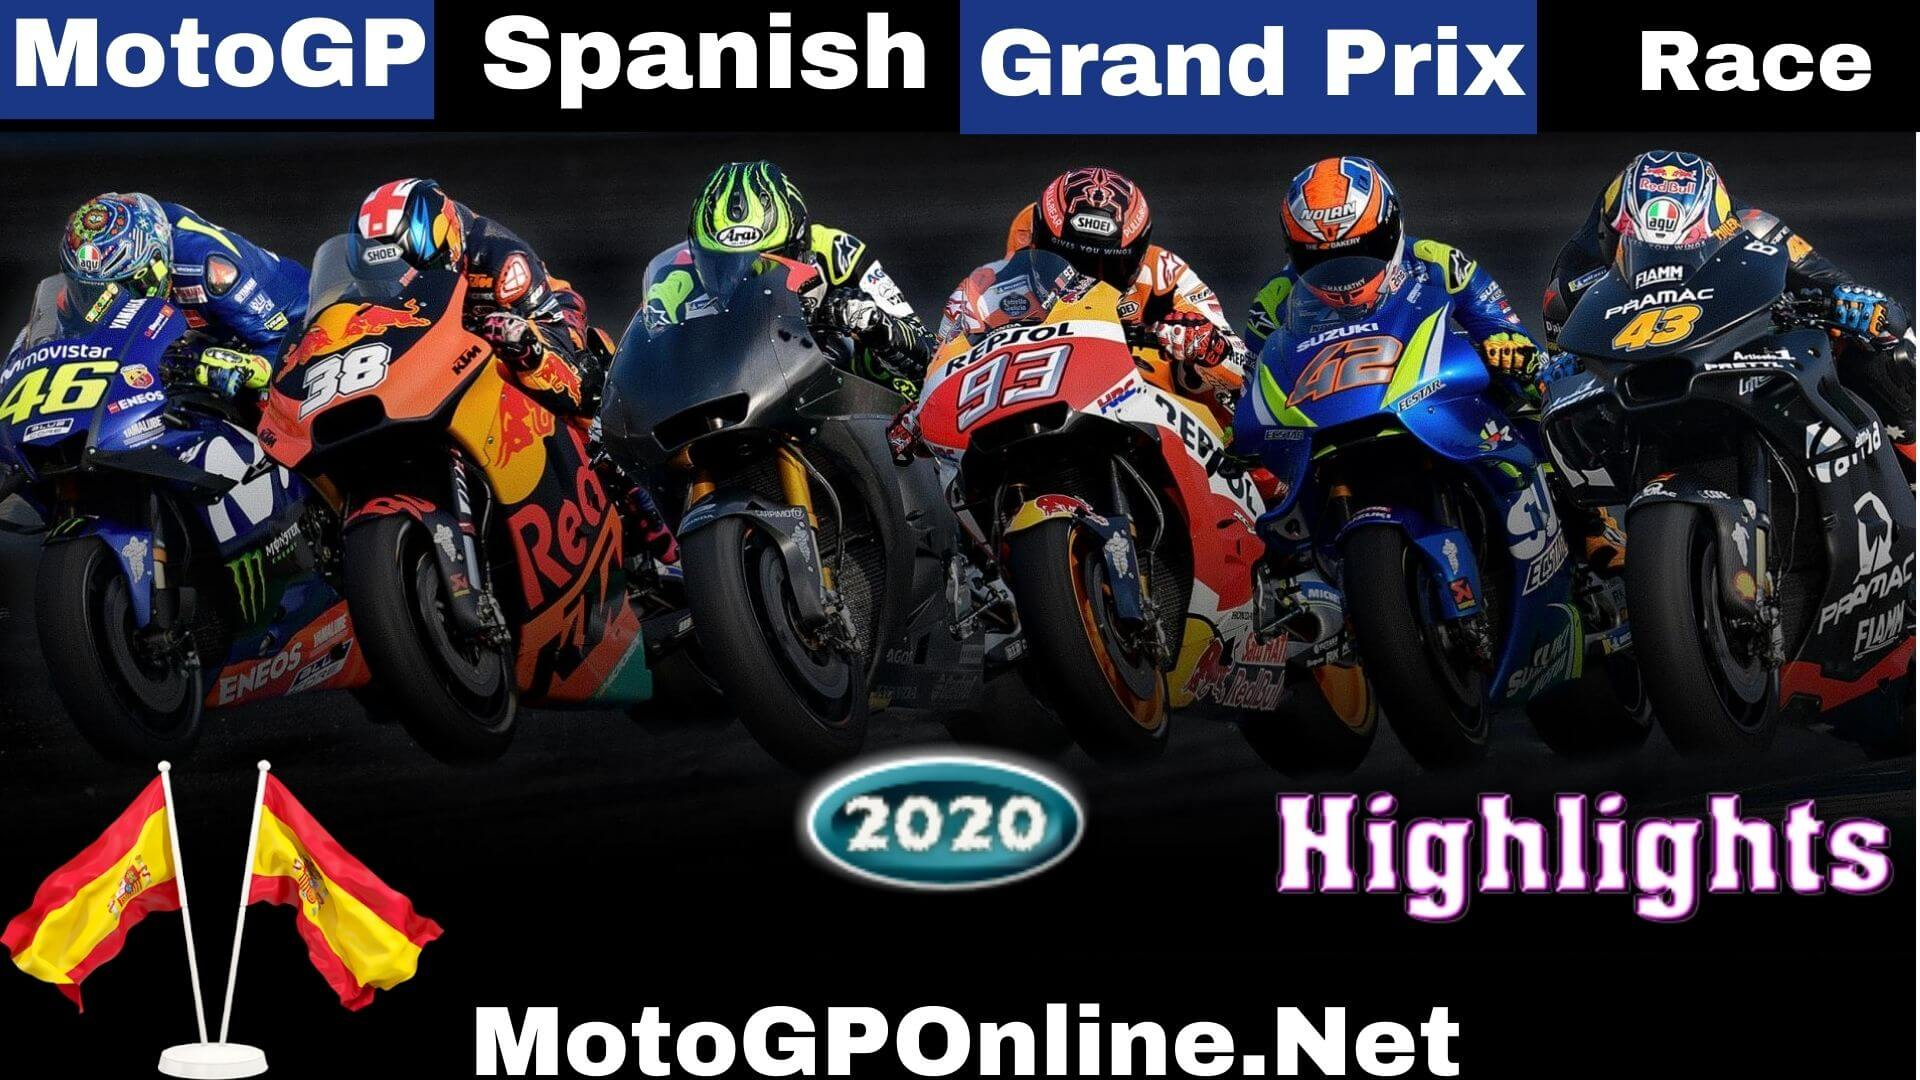 MotoGP Spanish Grand Prix Highlights 2020 Race